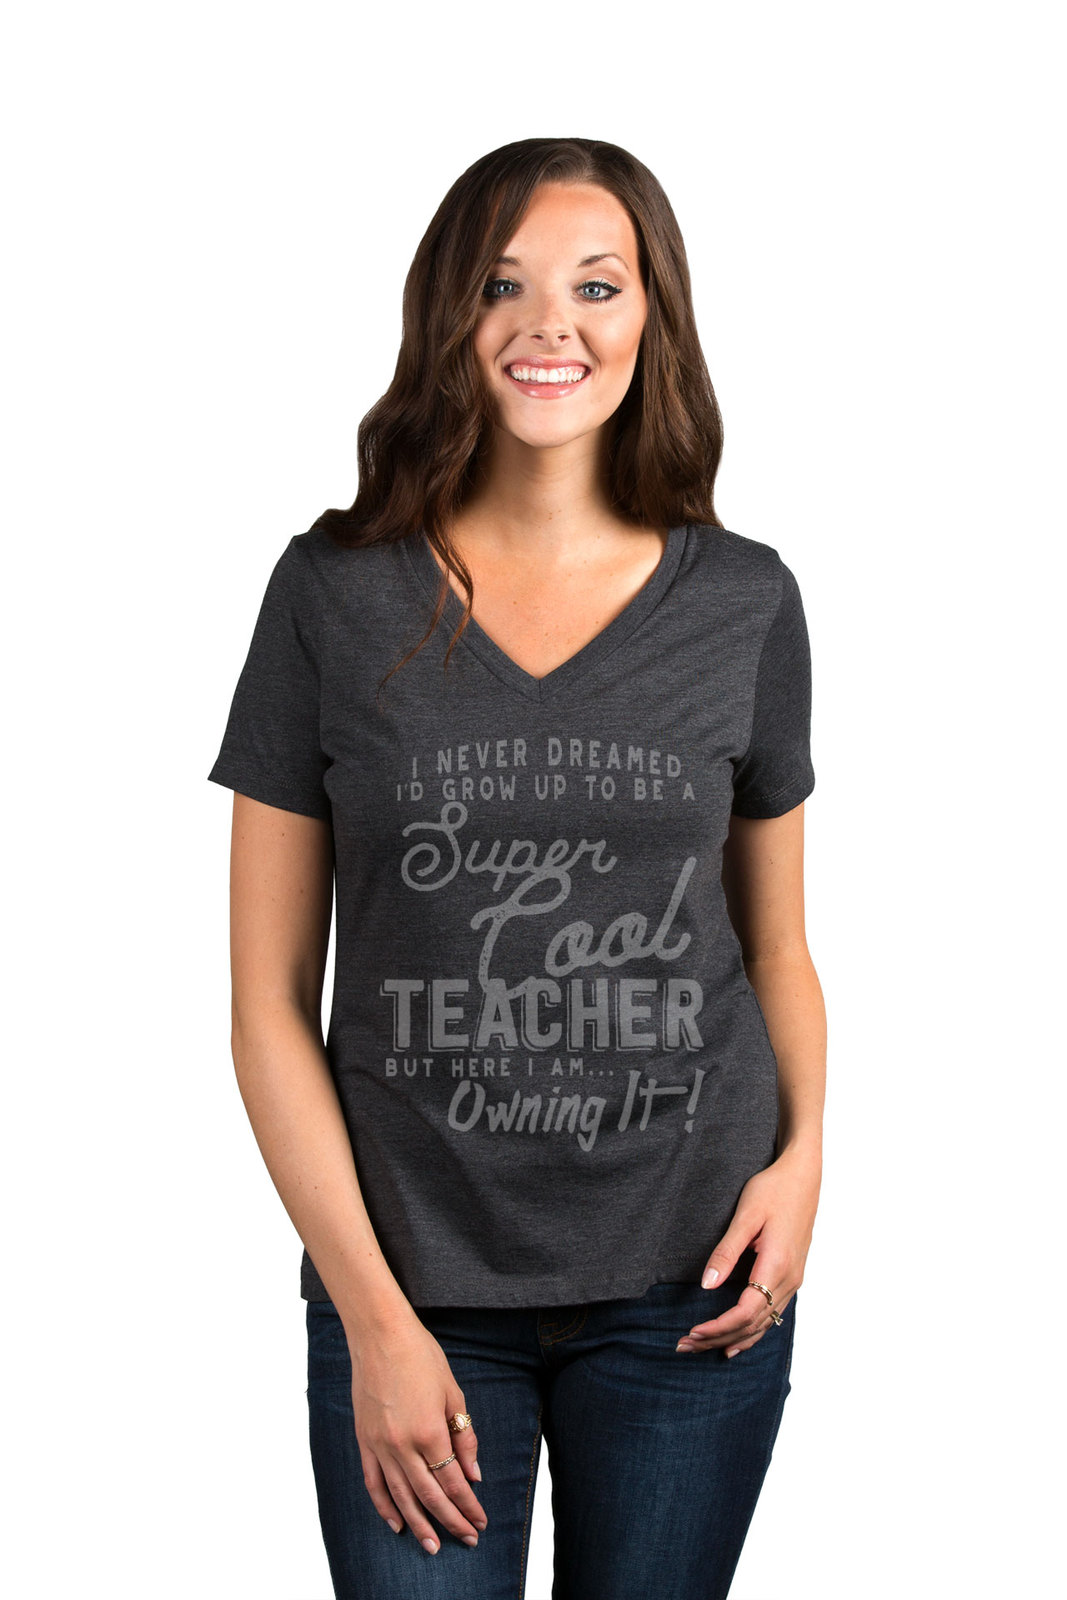 Thread Tank Super Cool Teacher Women's Relaxed V-Neck T-Shirt Tee Charcoal